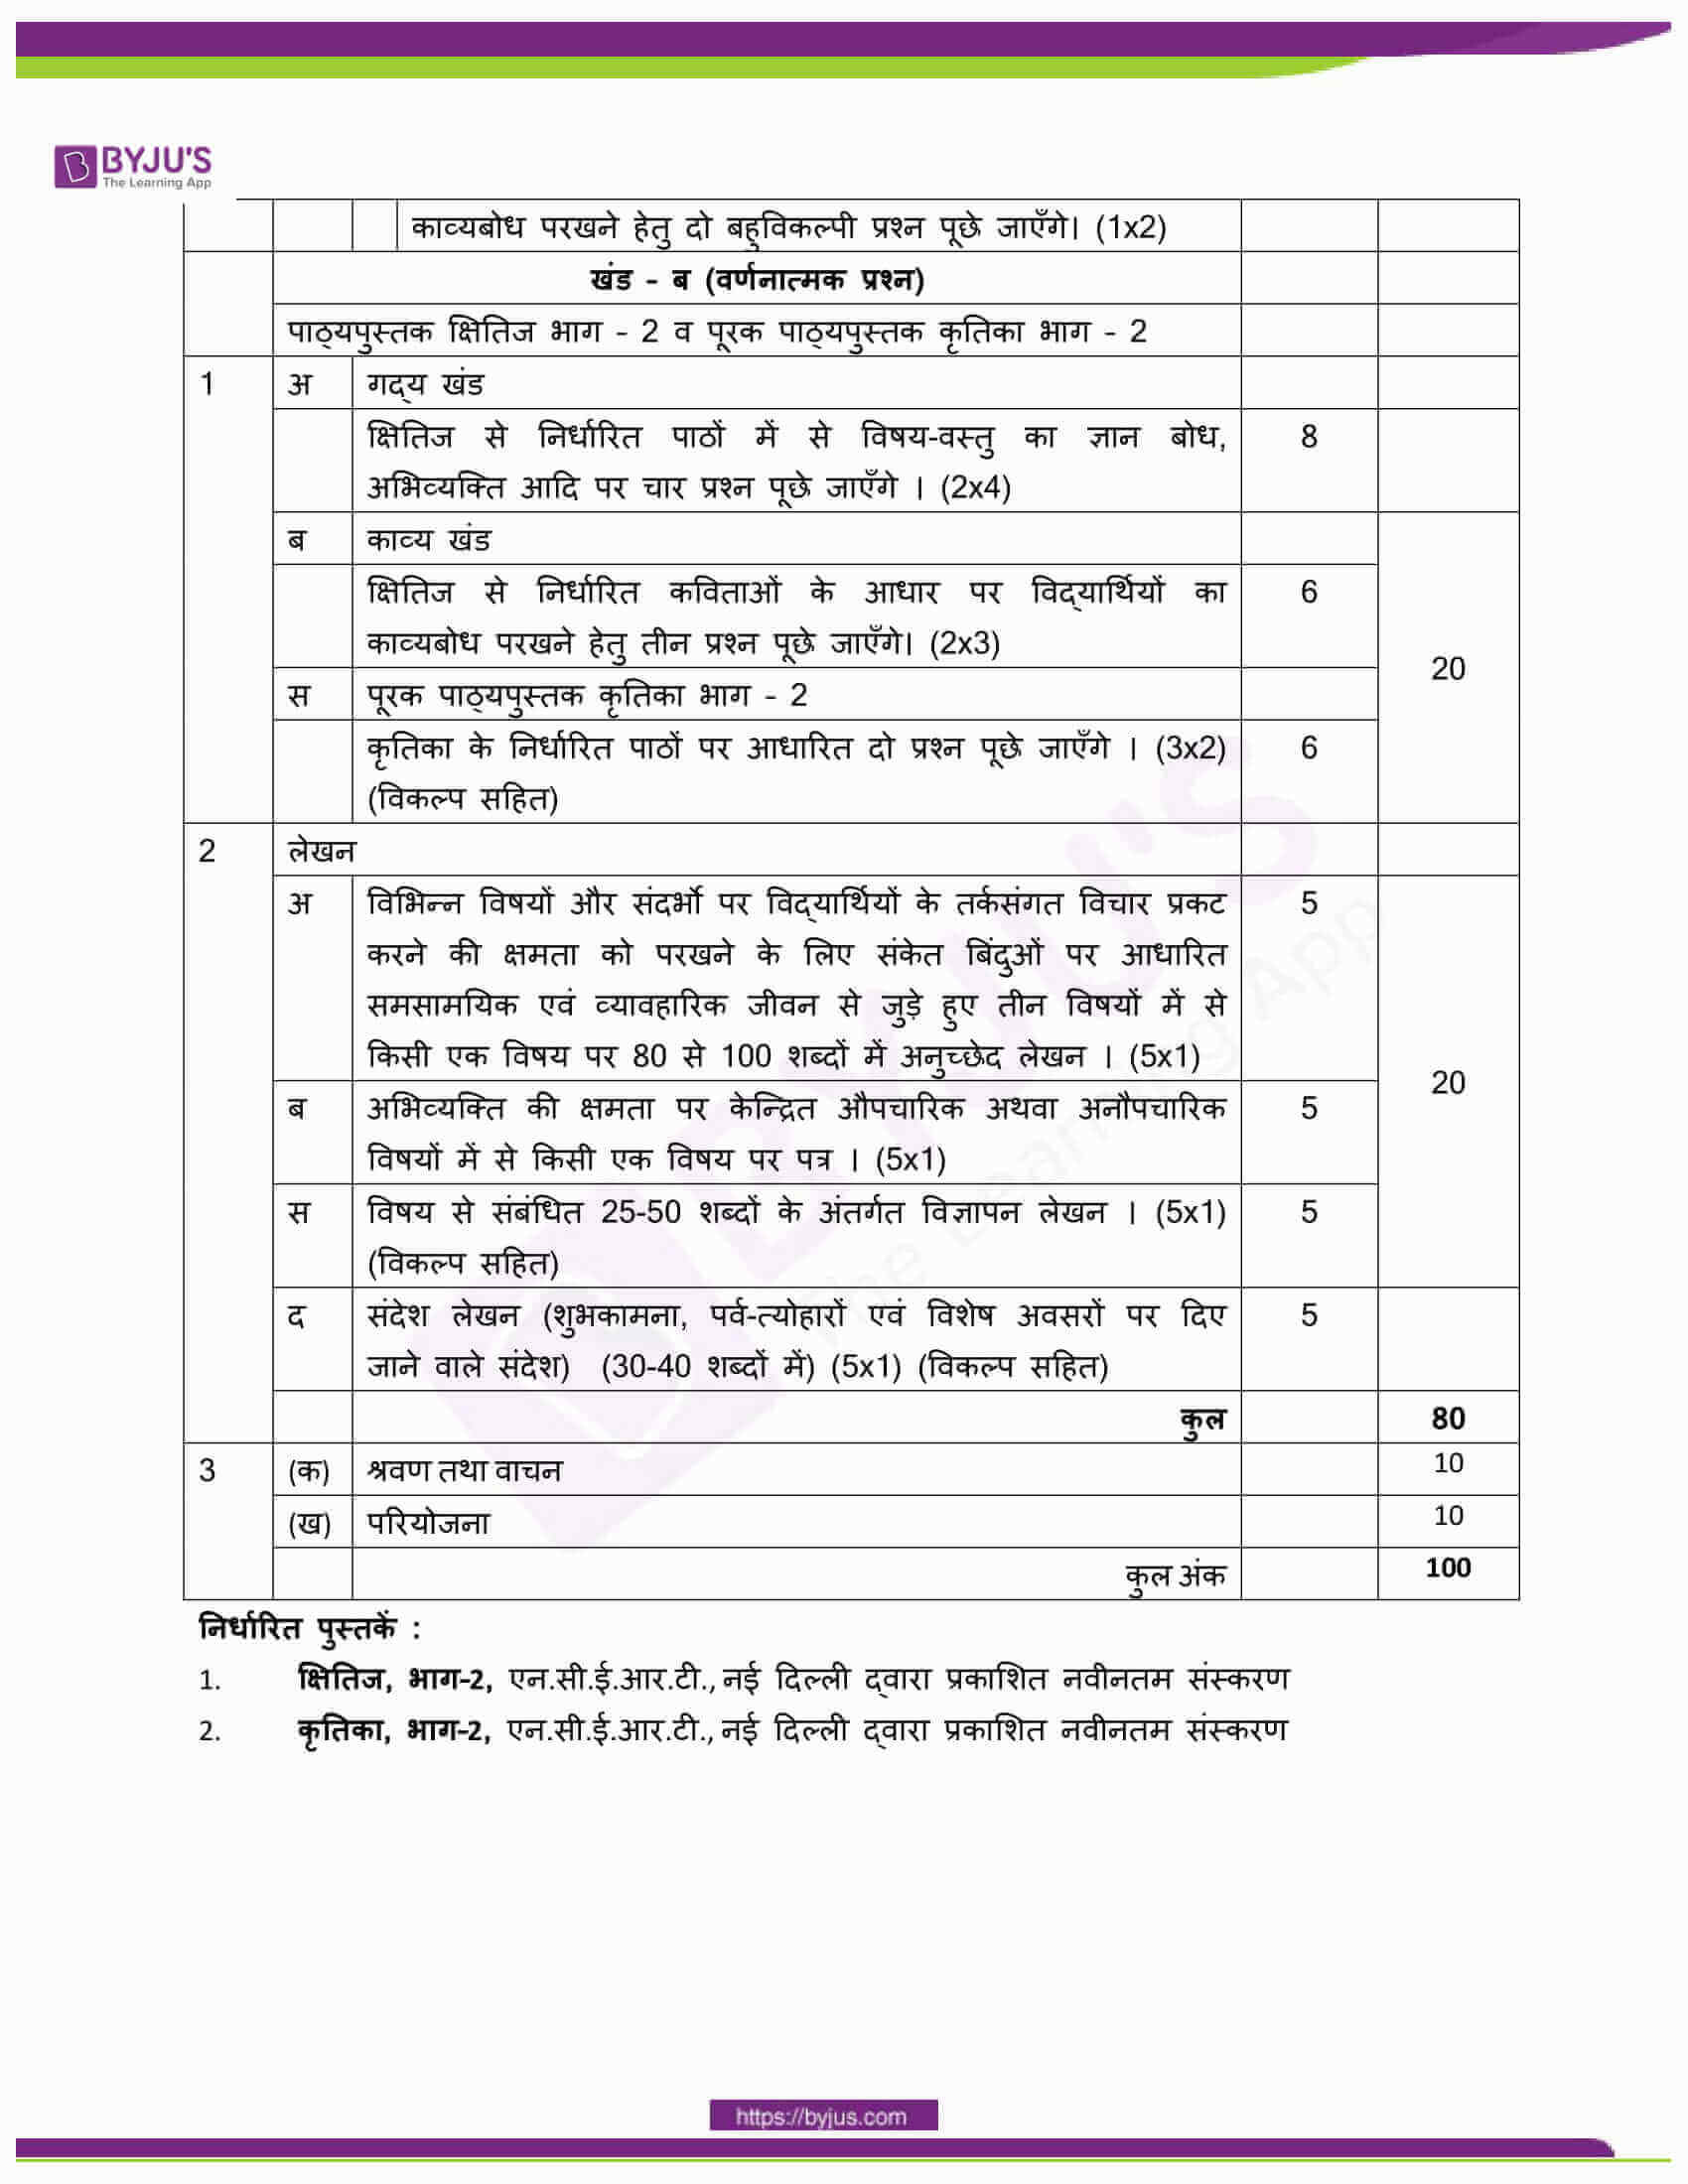 CBSE Class 10 Hindi Course A Revised Syllabus 2020 21 11